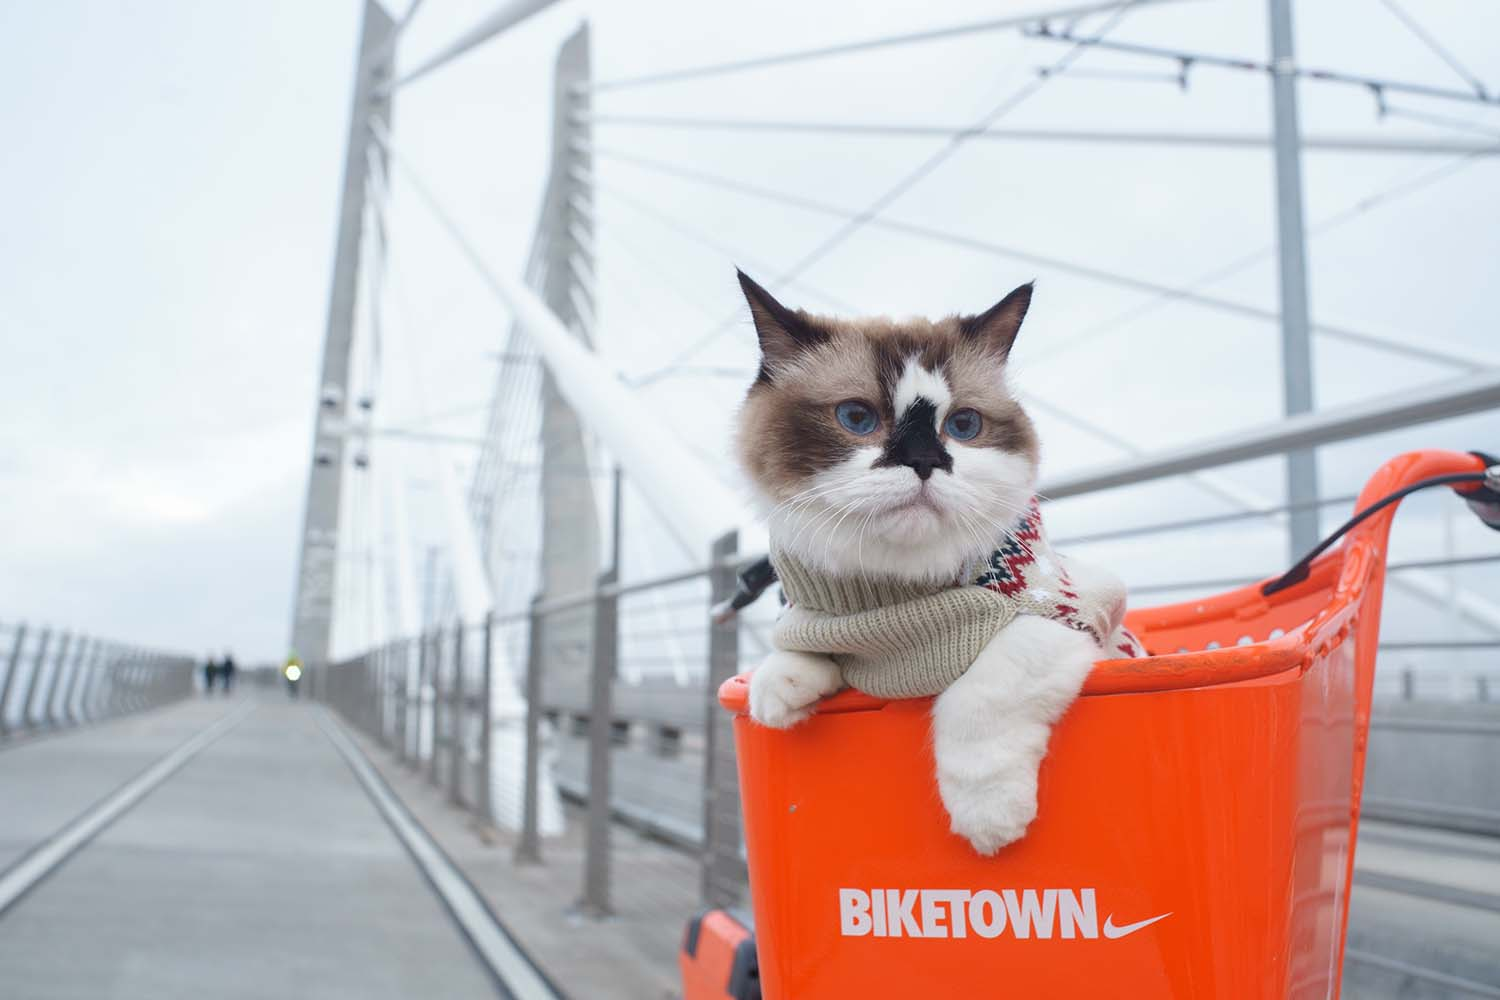 Pets in Cities: Tips for a Safe Inner-City Life With Your Furry Friend